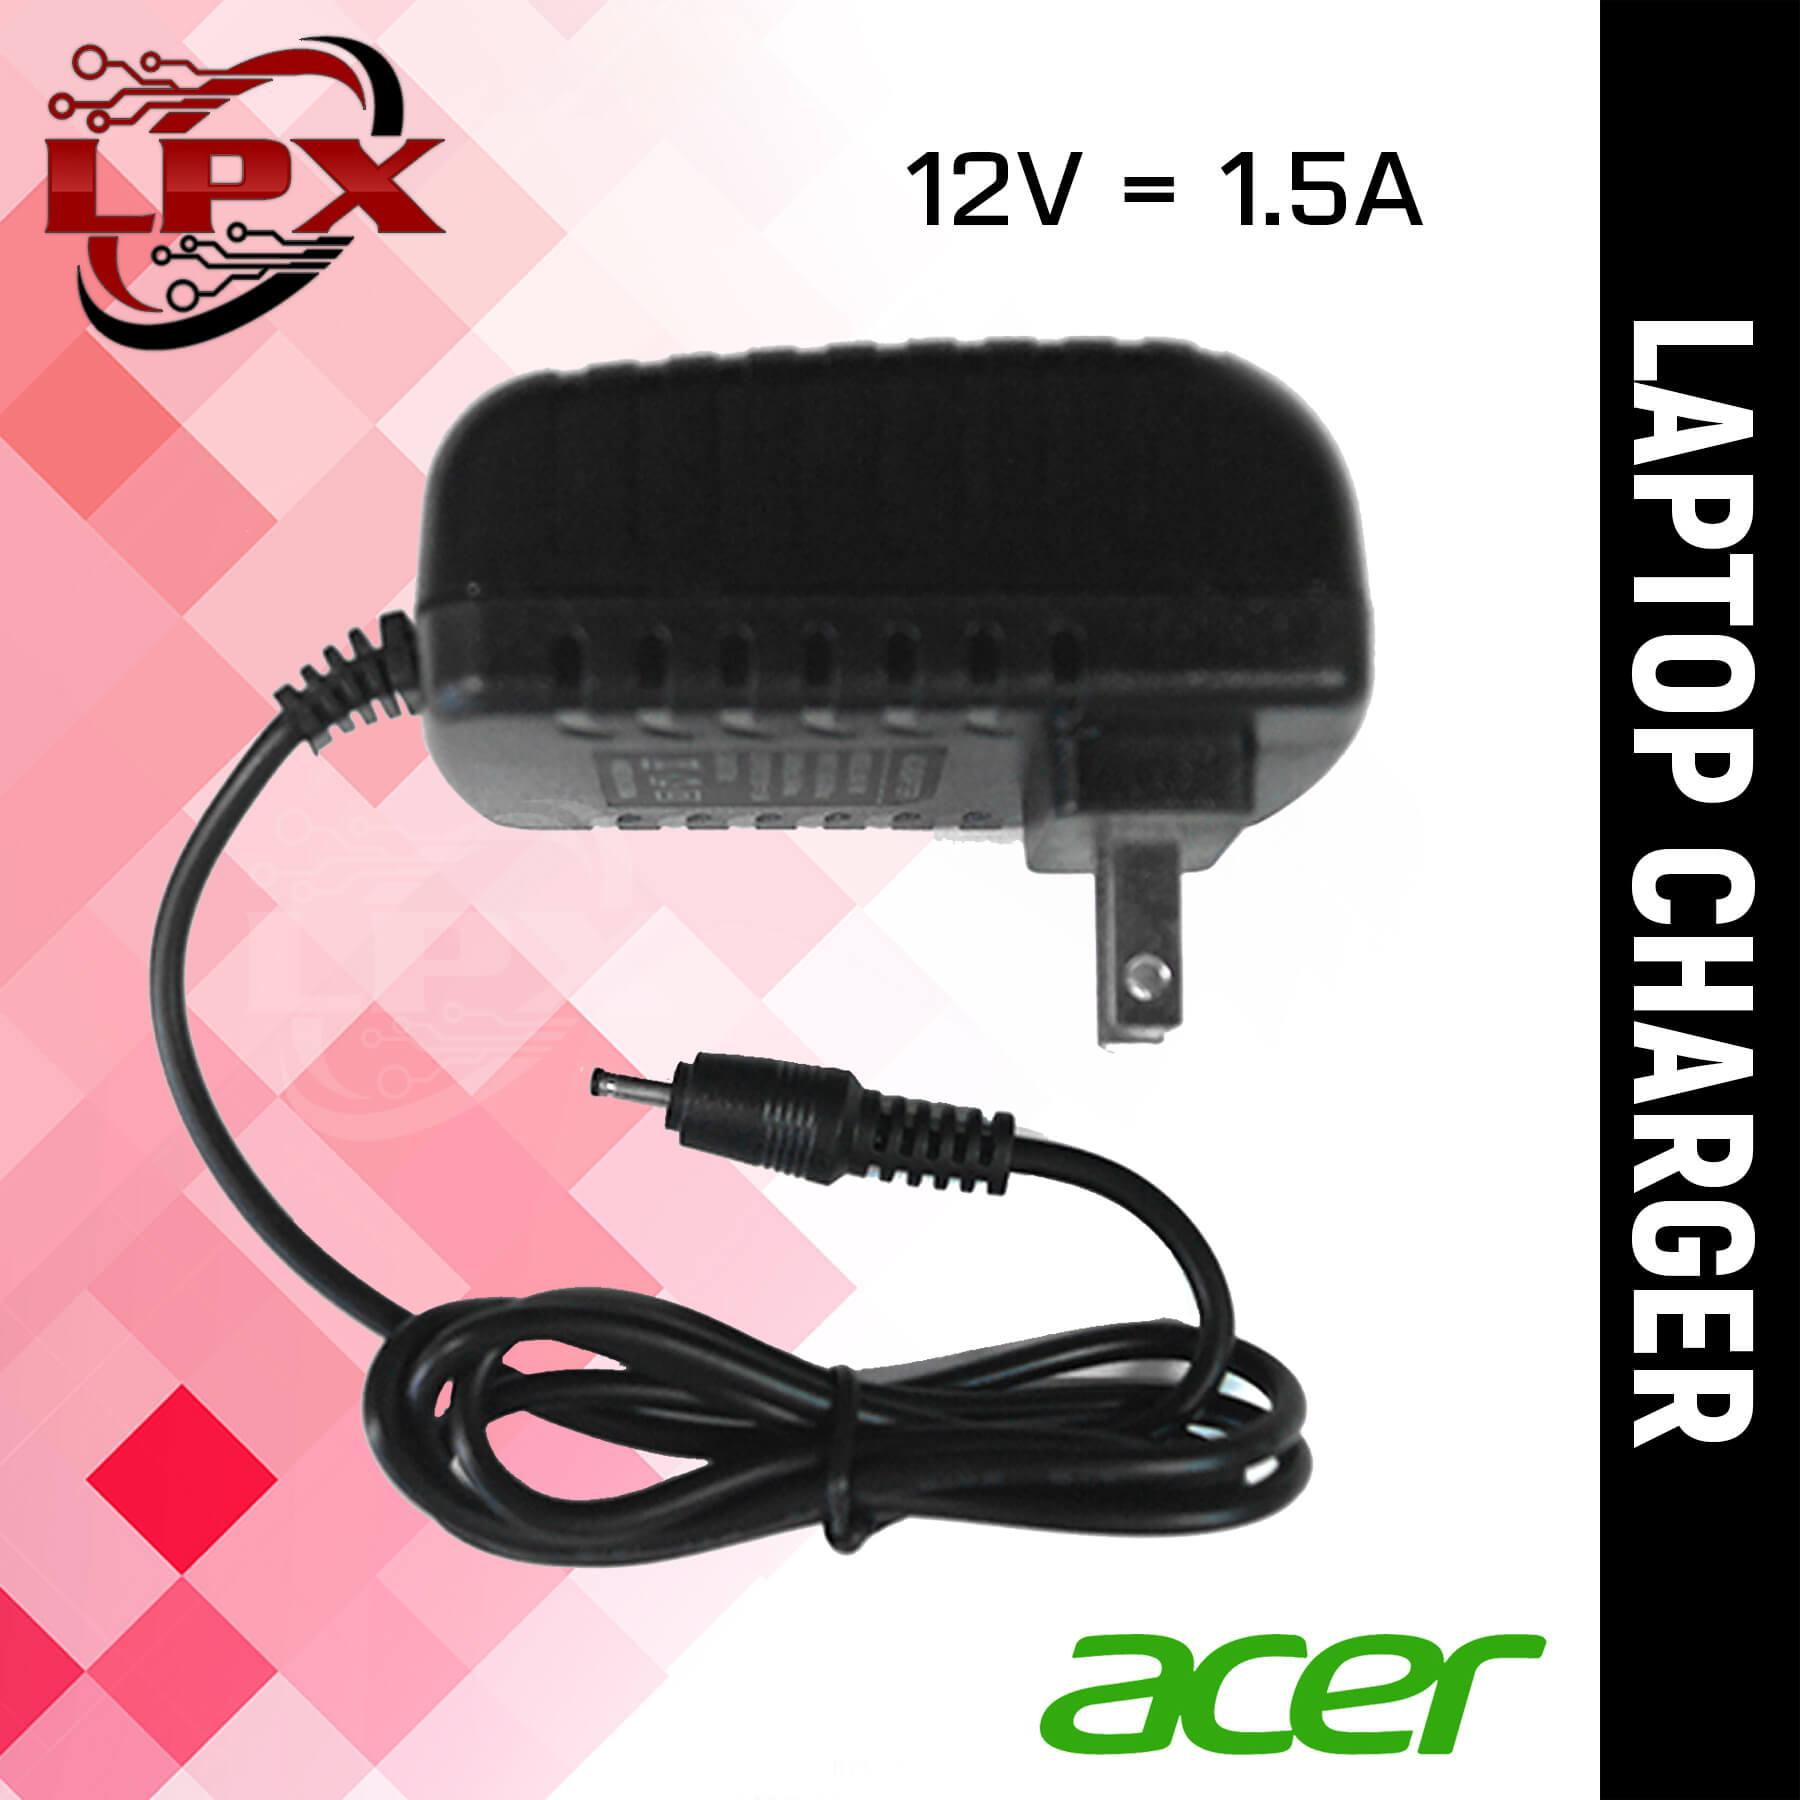 Acer Computer Accessories Philippines Pc For Sale Original Baterai V5 471g 431g 531 Al12a32 Ms2360 E1 432 Iconia Charger Adapter 12v 15a A500 A100 A501 Tablet